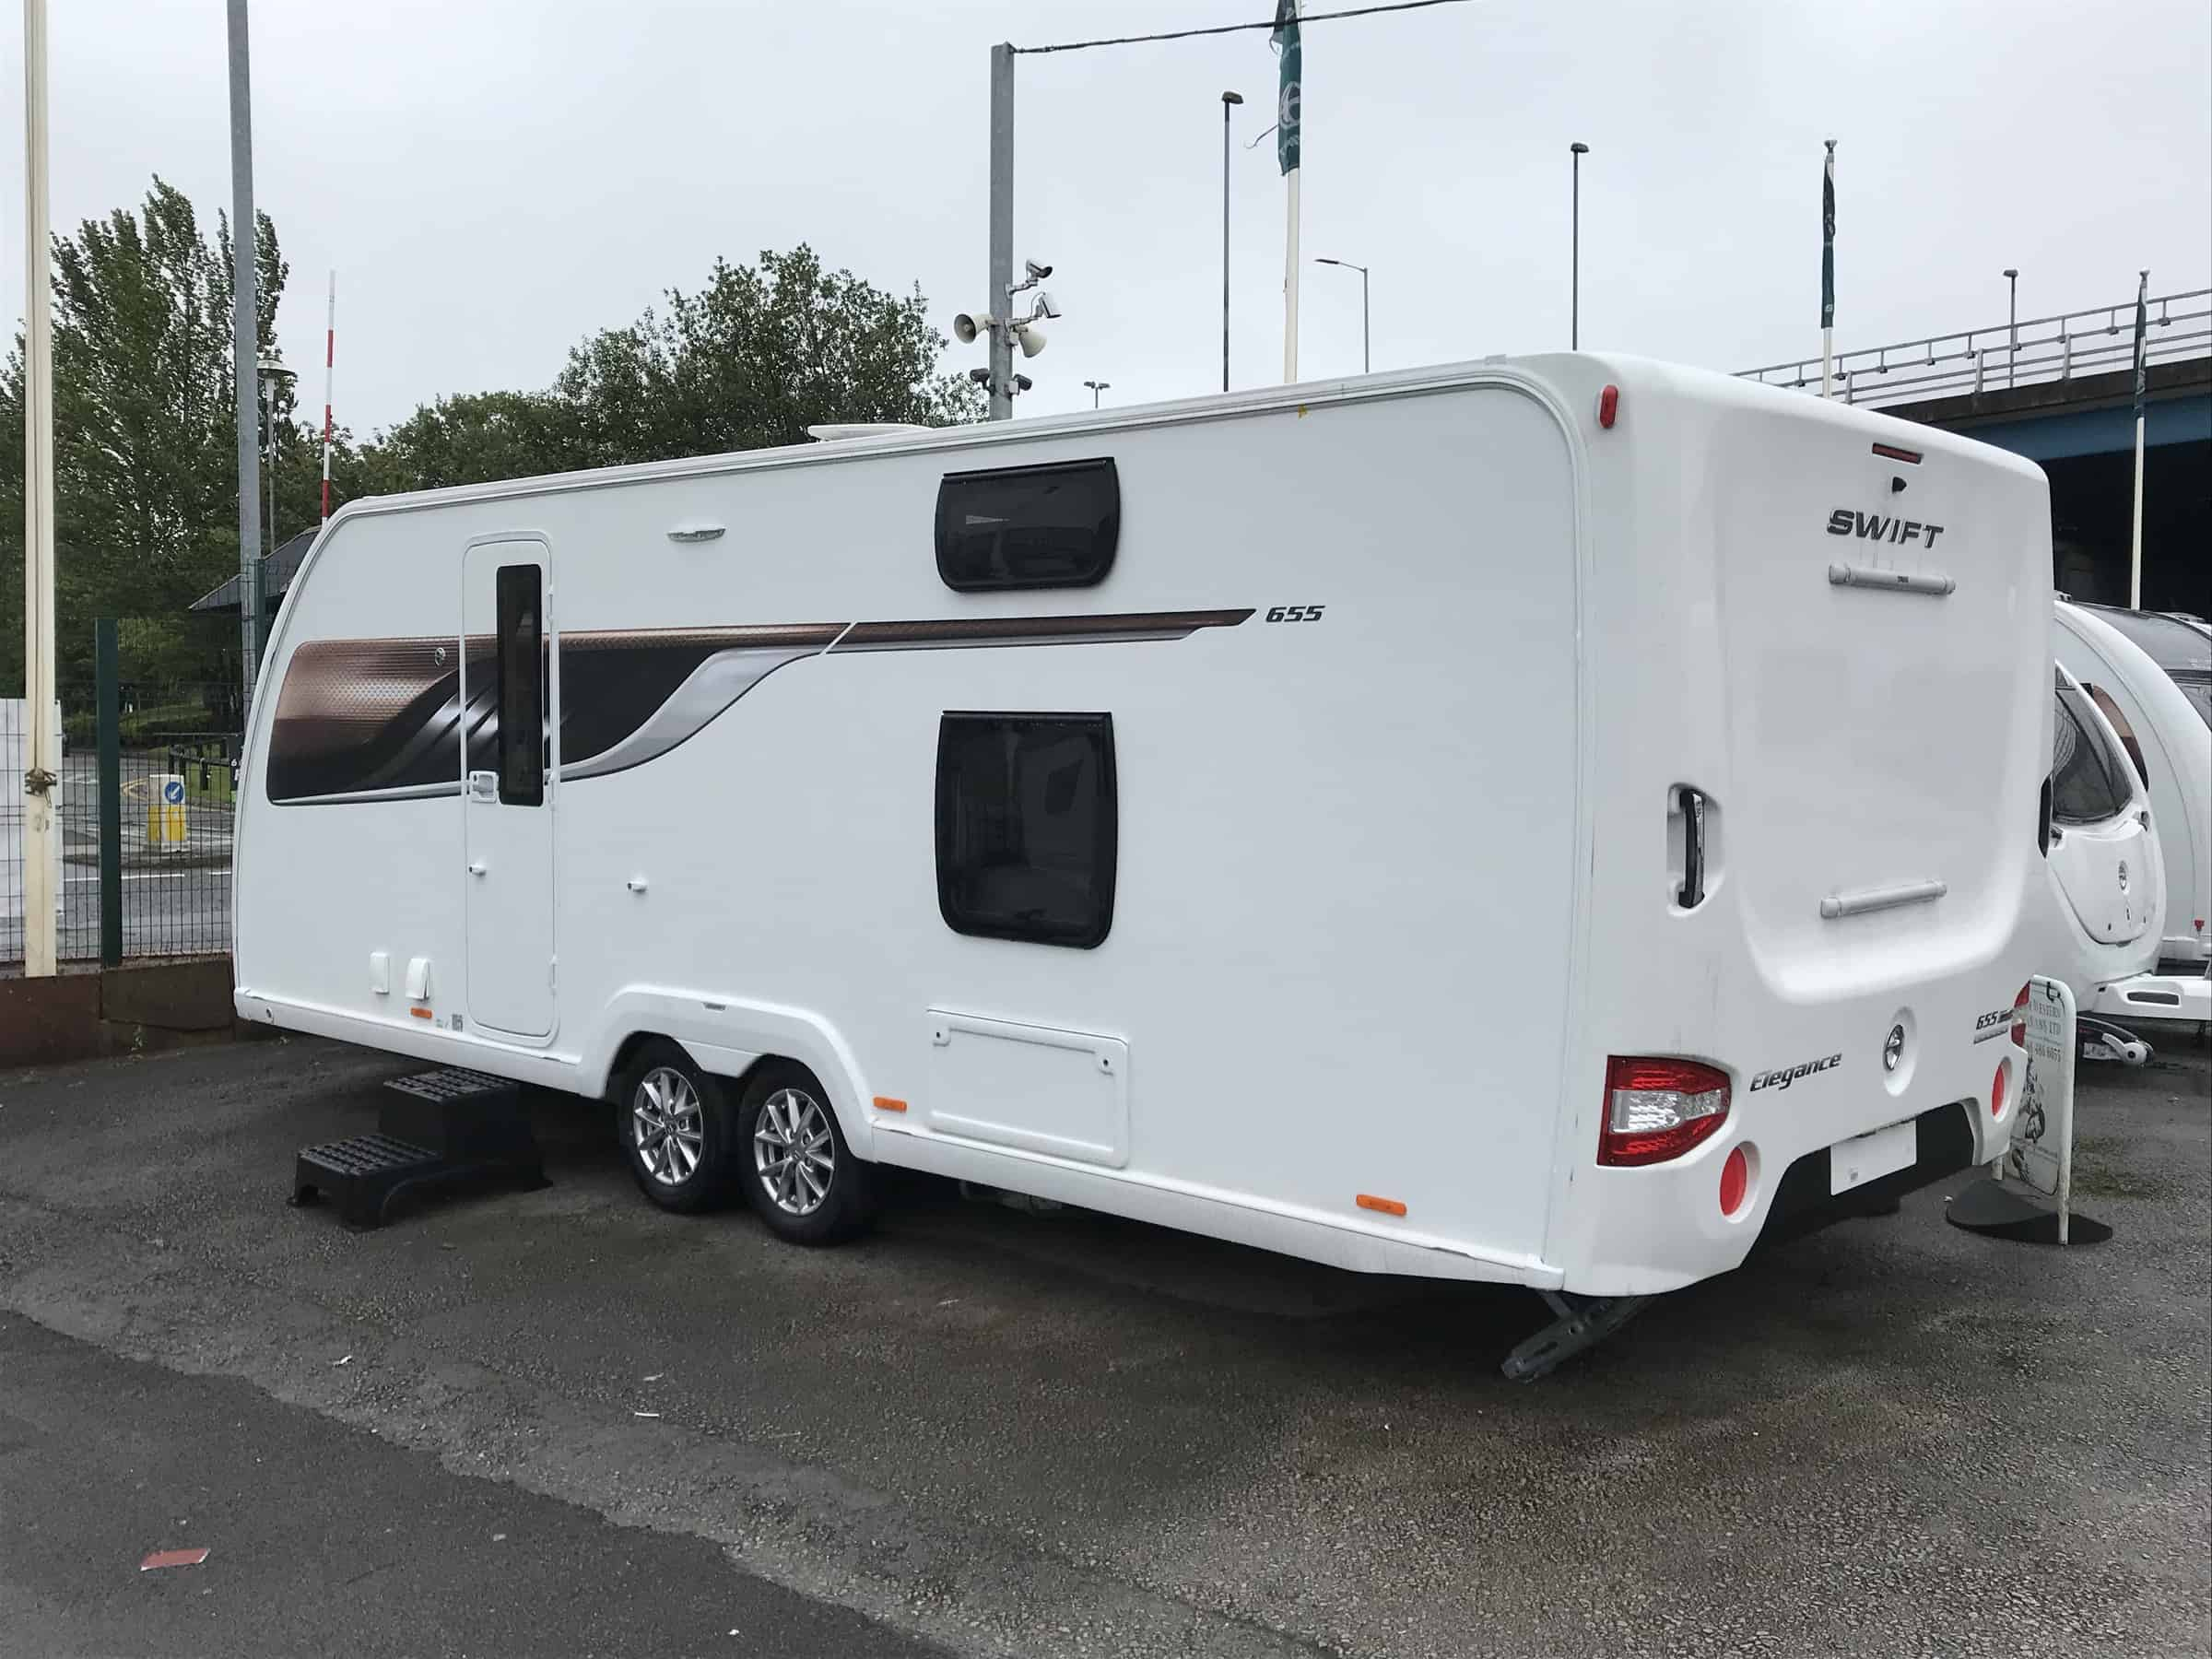 swift Elegance Grande 655 2019 6 berth fixed double rear bunk beds and a all new pull down double bed. REDUCED DOWN TO £29250